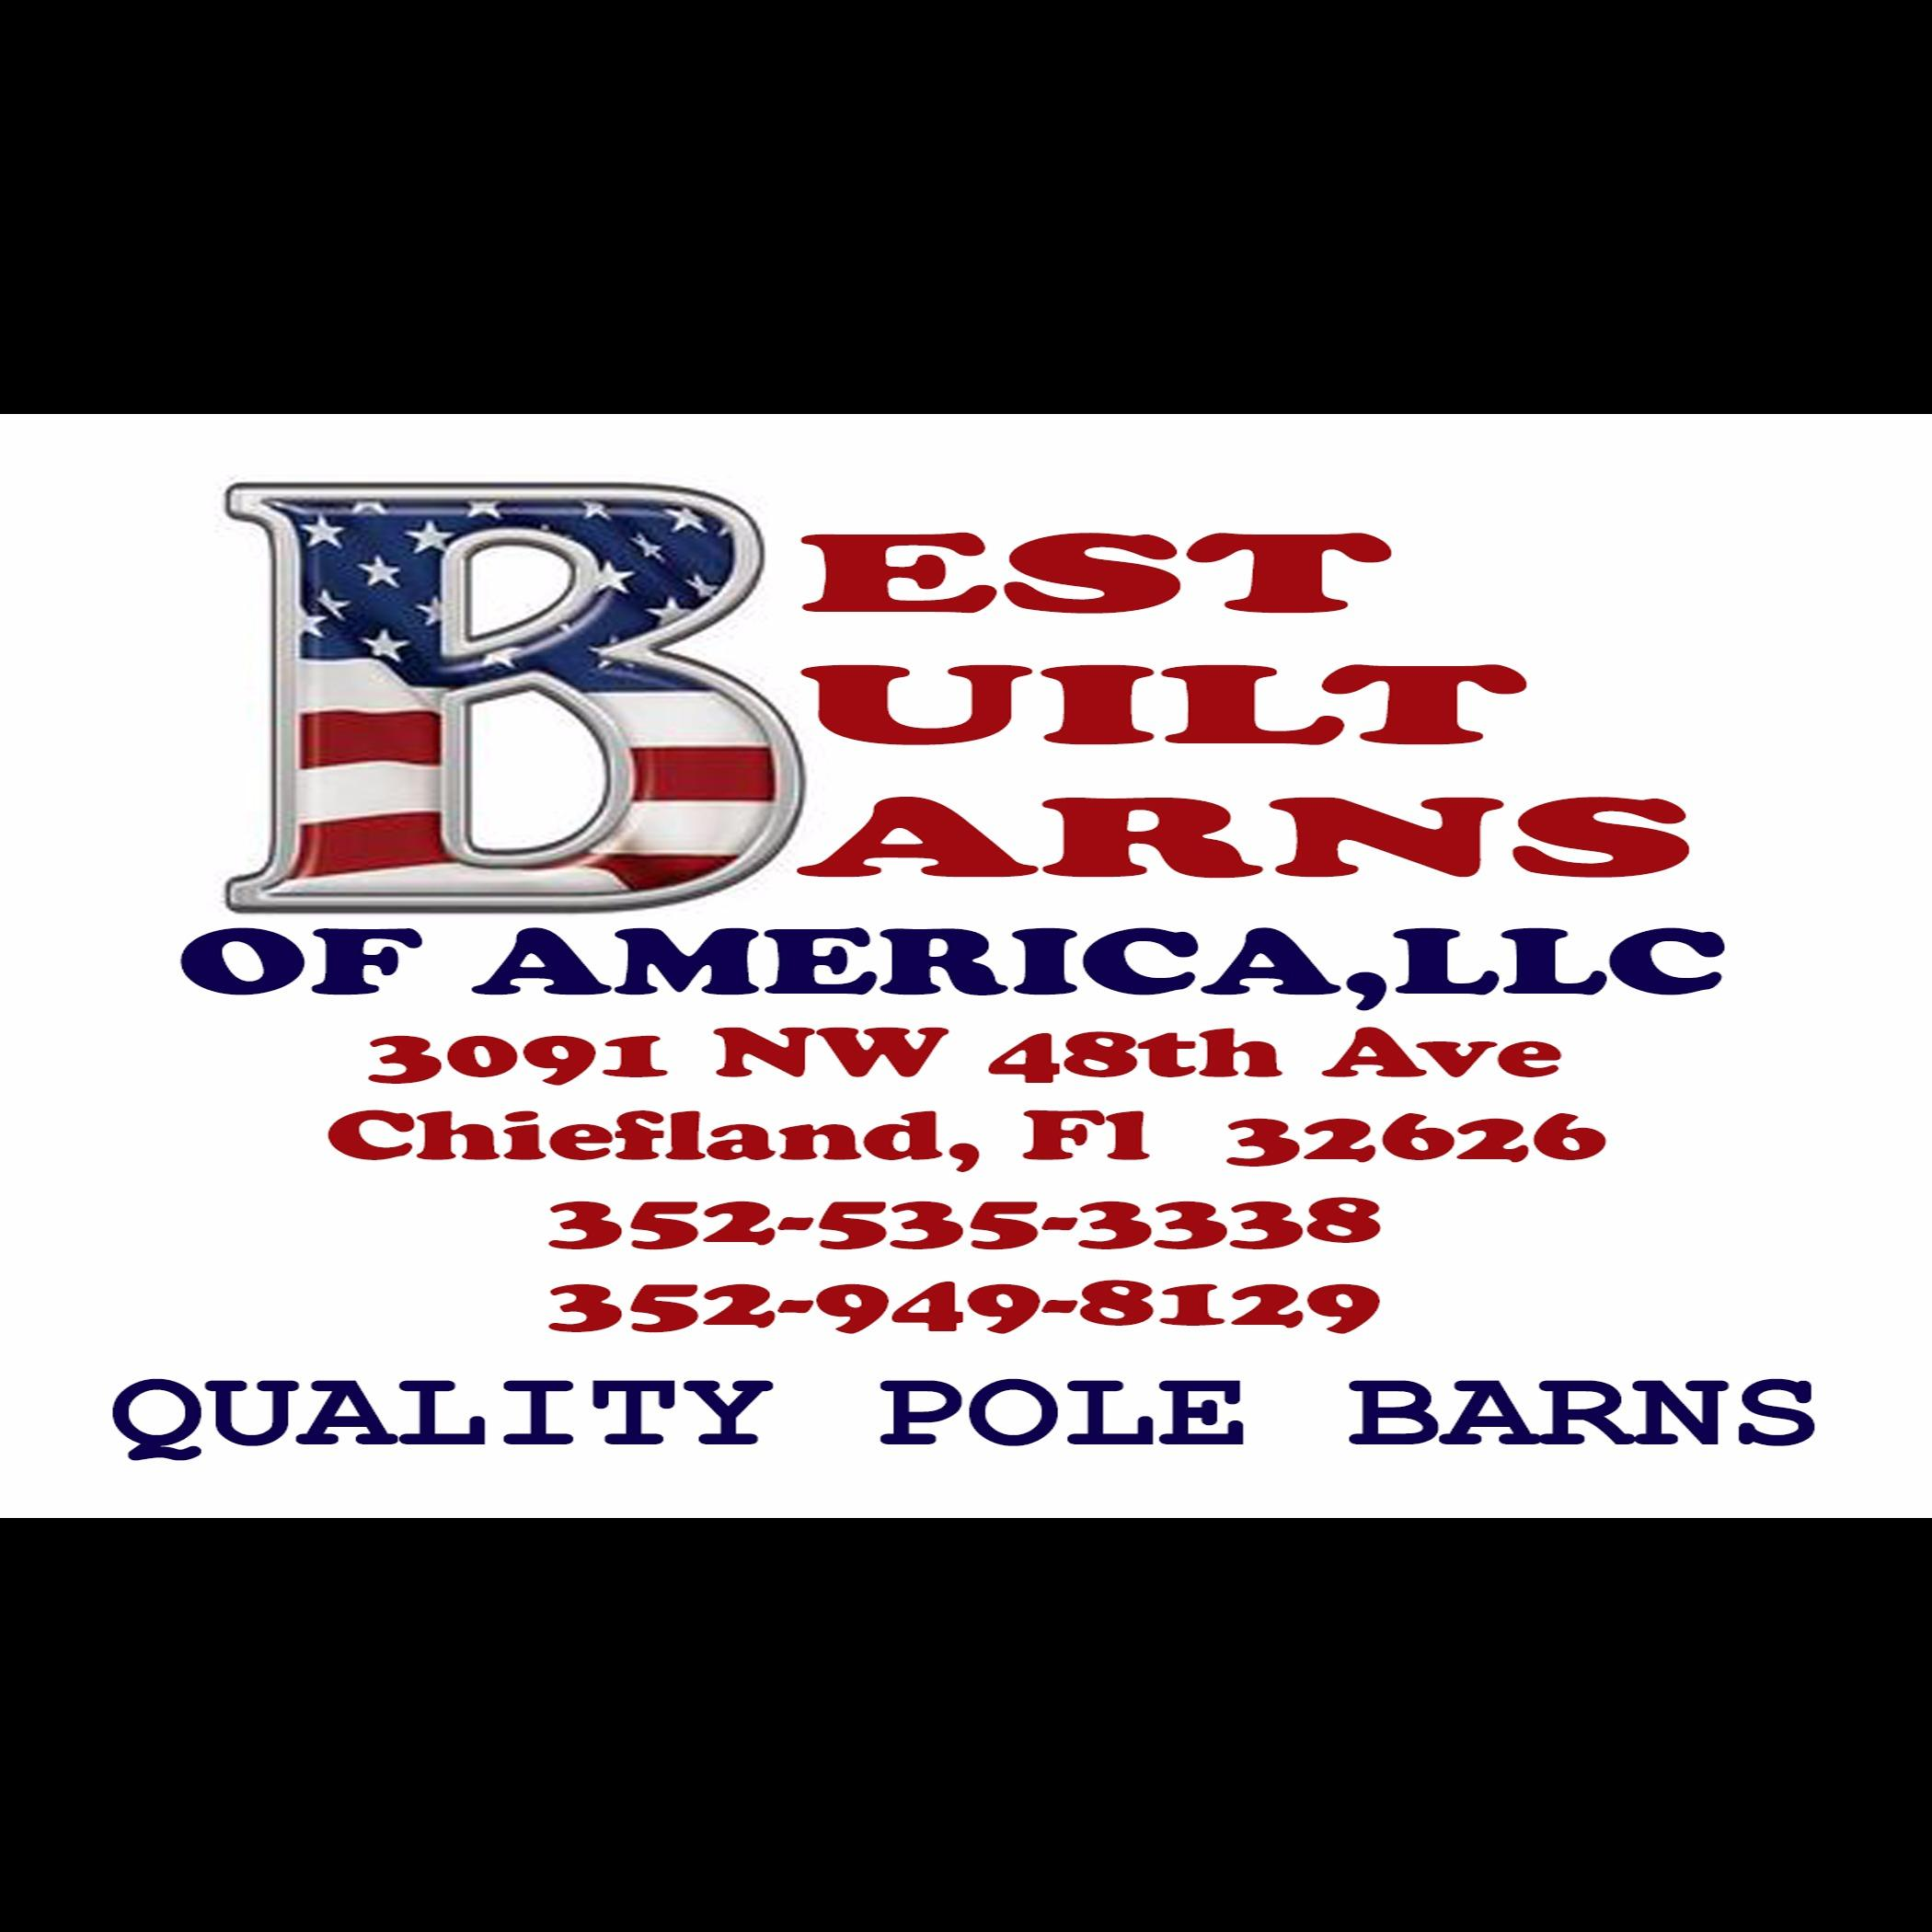 Best built barns of america in chiefland fl furniture for Furniture of america address